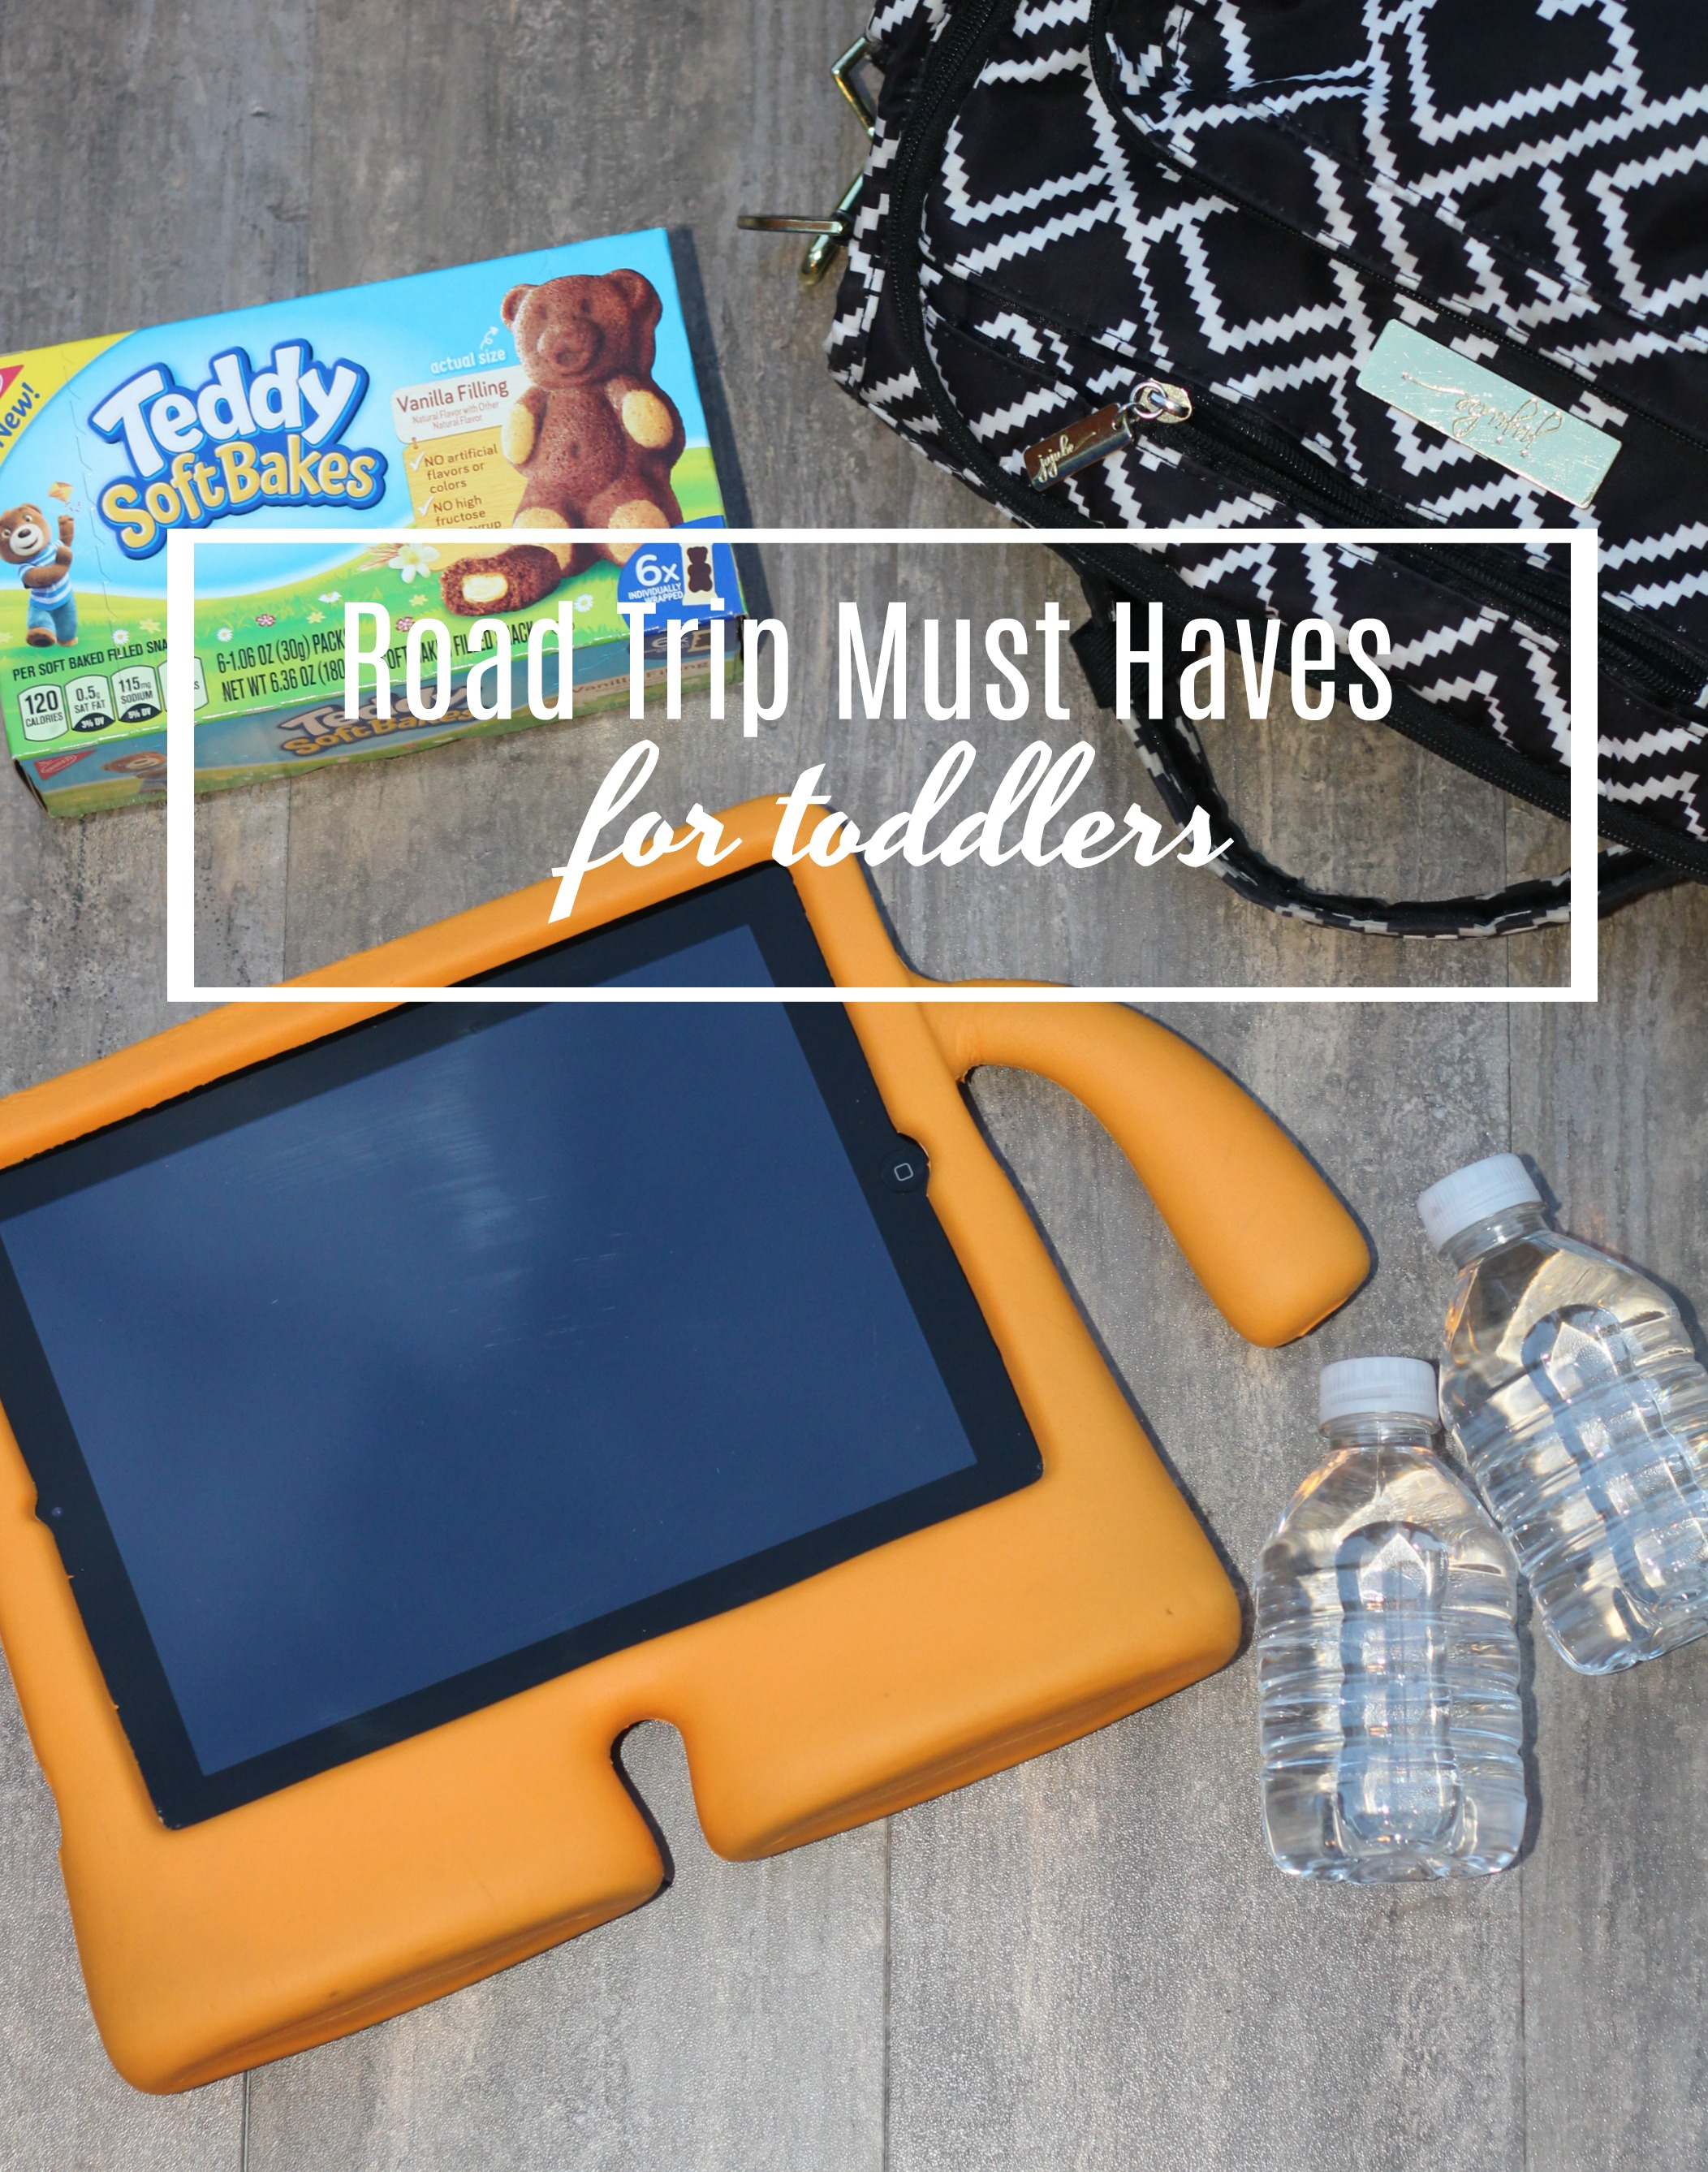 Road Trip Must Haves for Toddlers